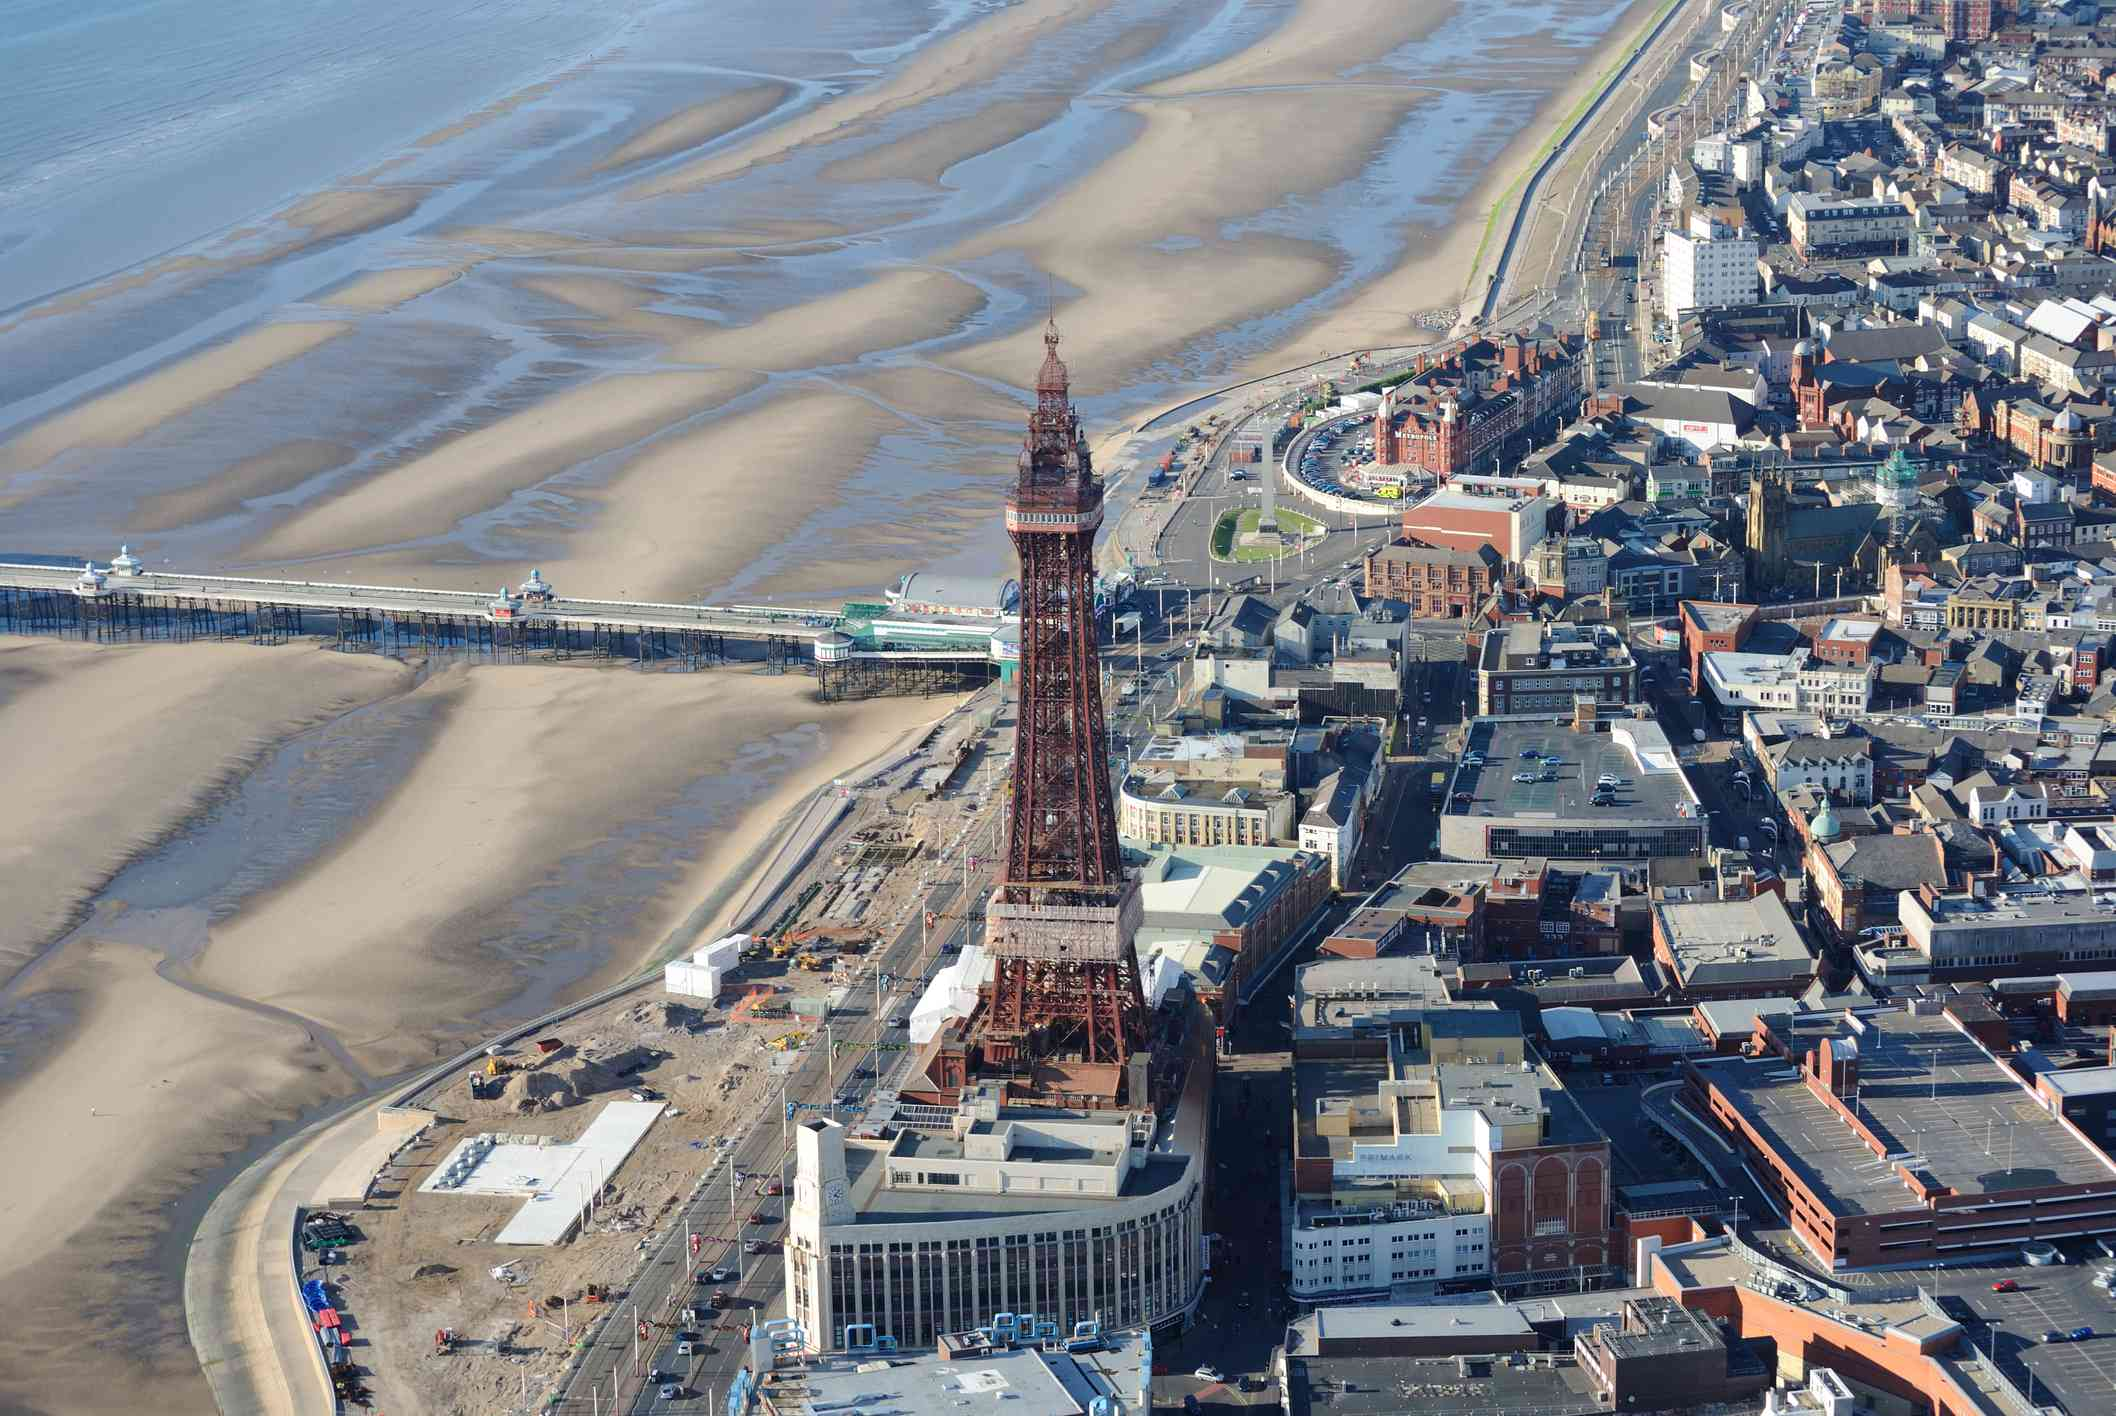 Blackpool Tower from the air